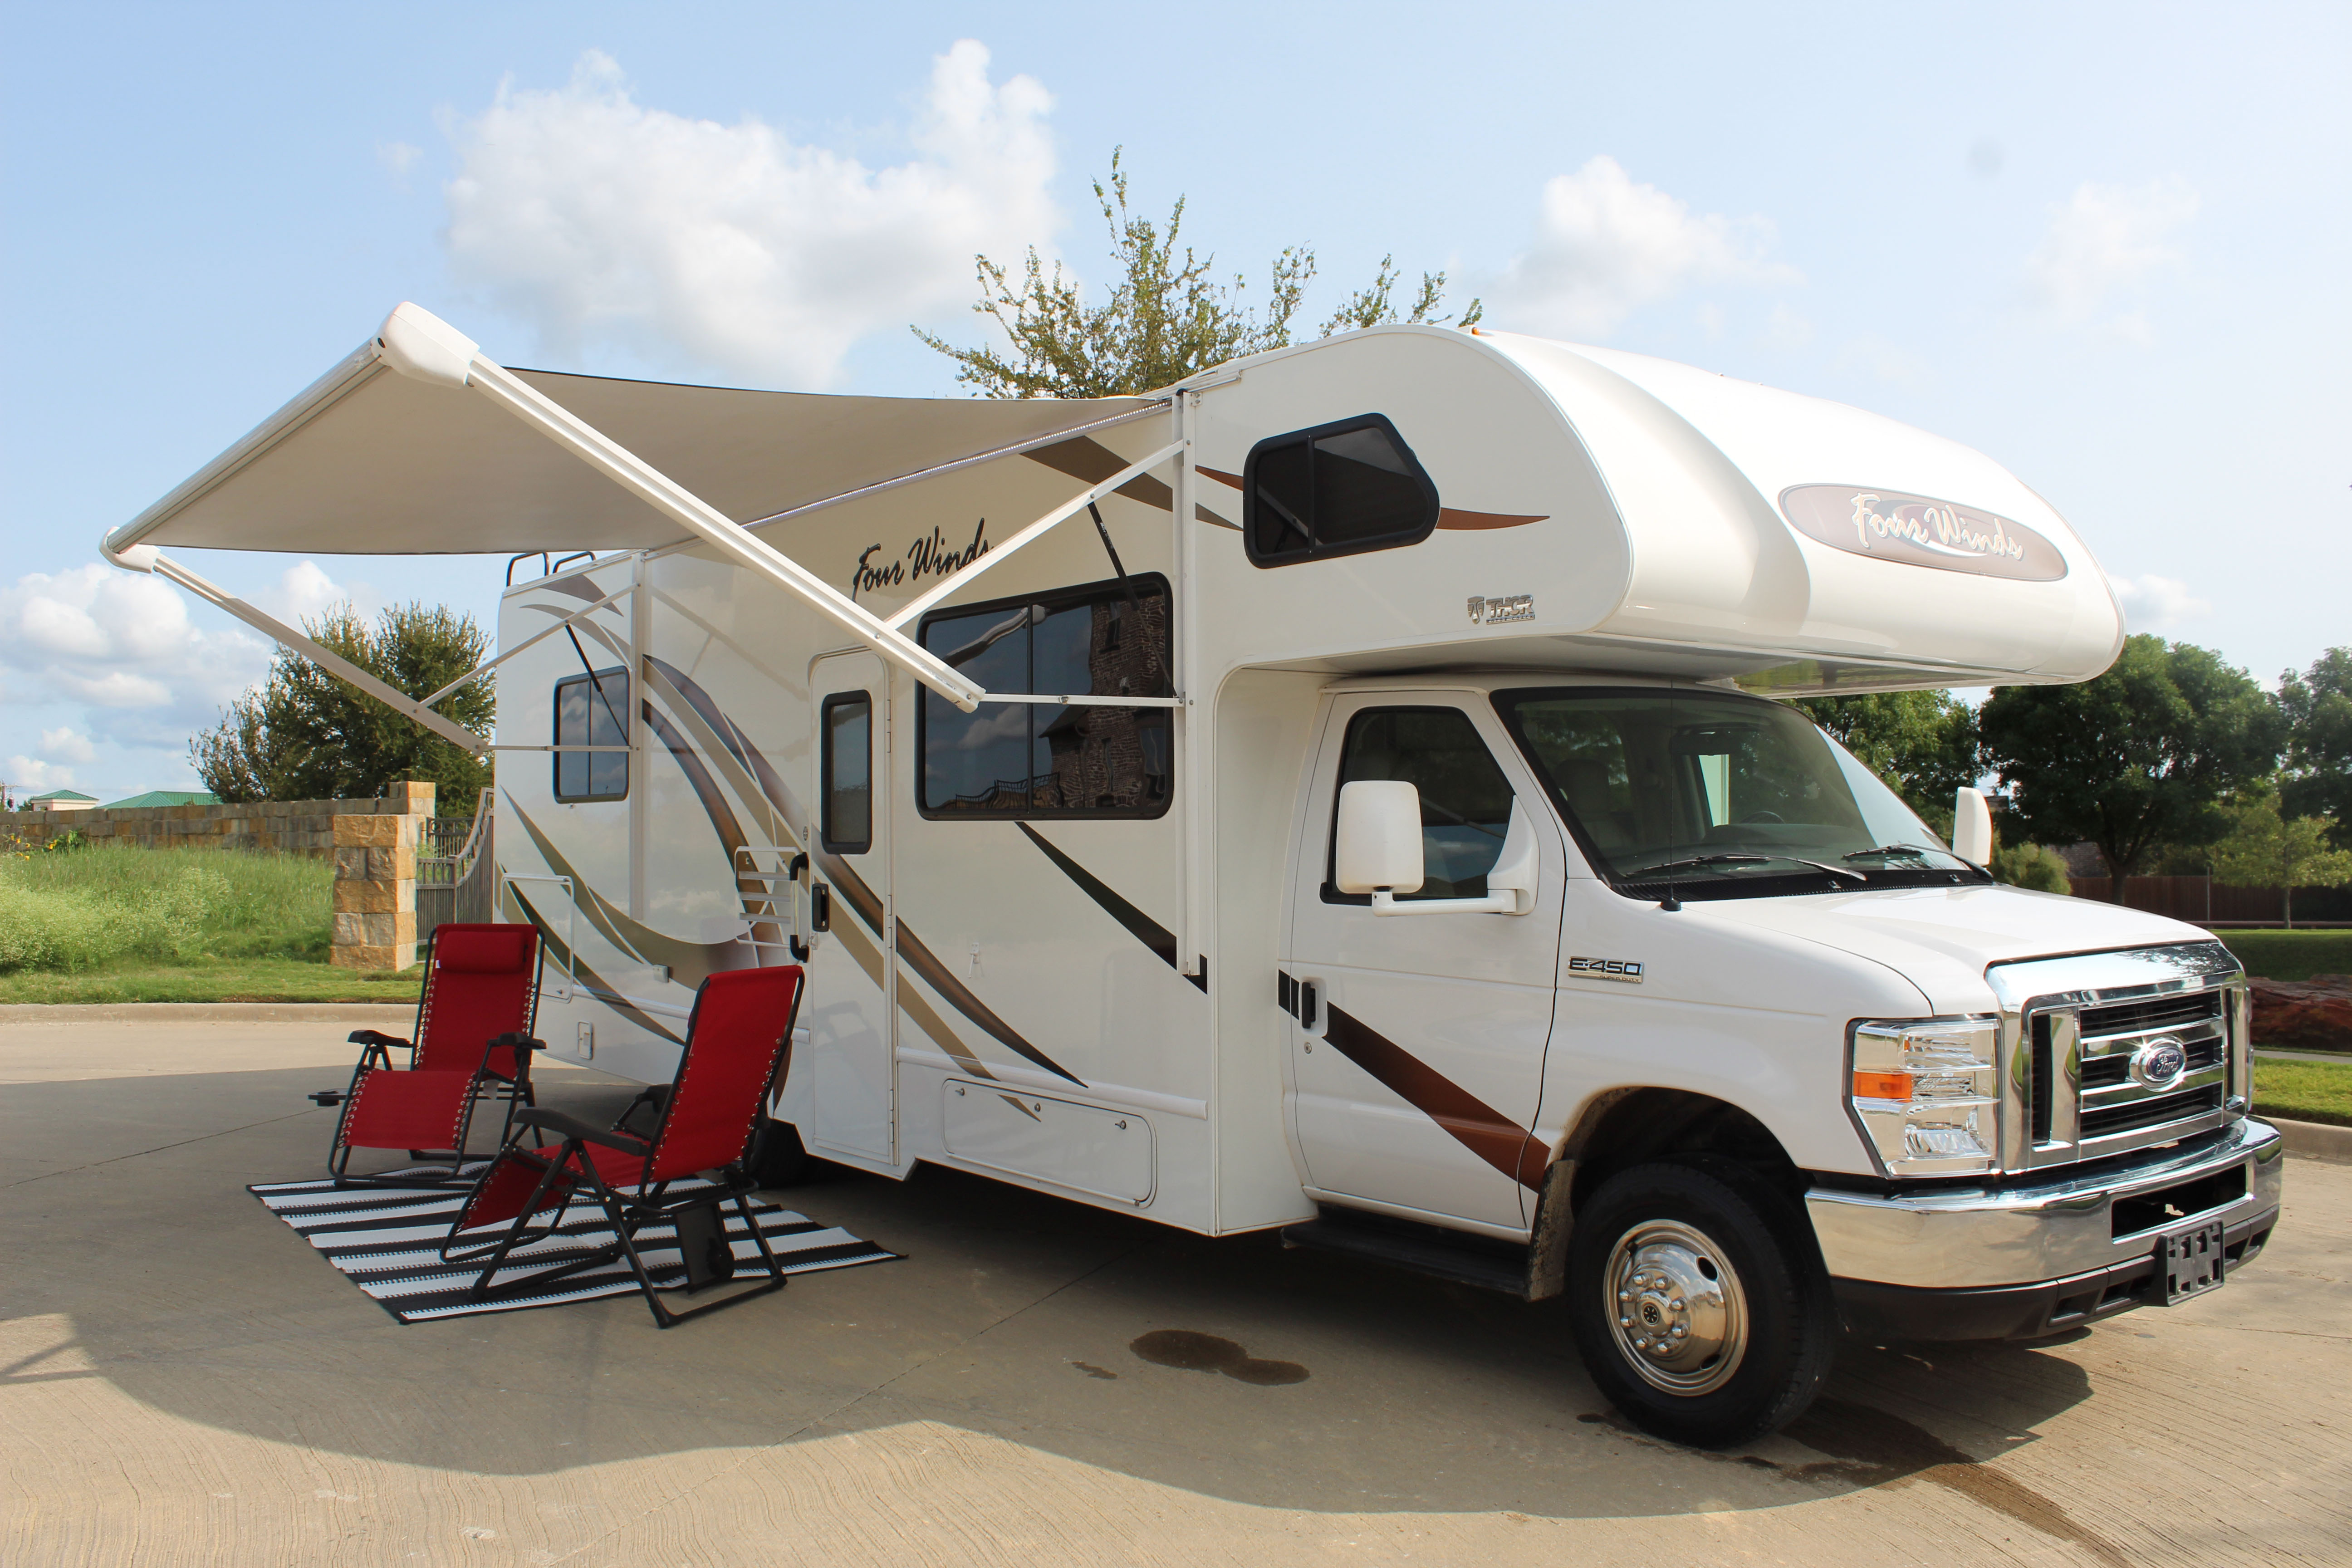 Large Awning with LED Lights. Thor Motor Coach 28A Four Winds 28A 2019